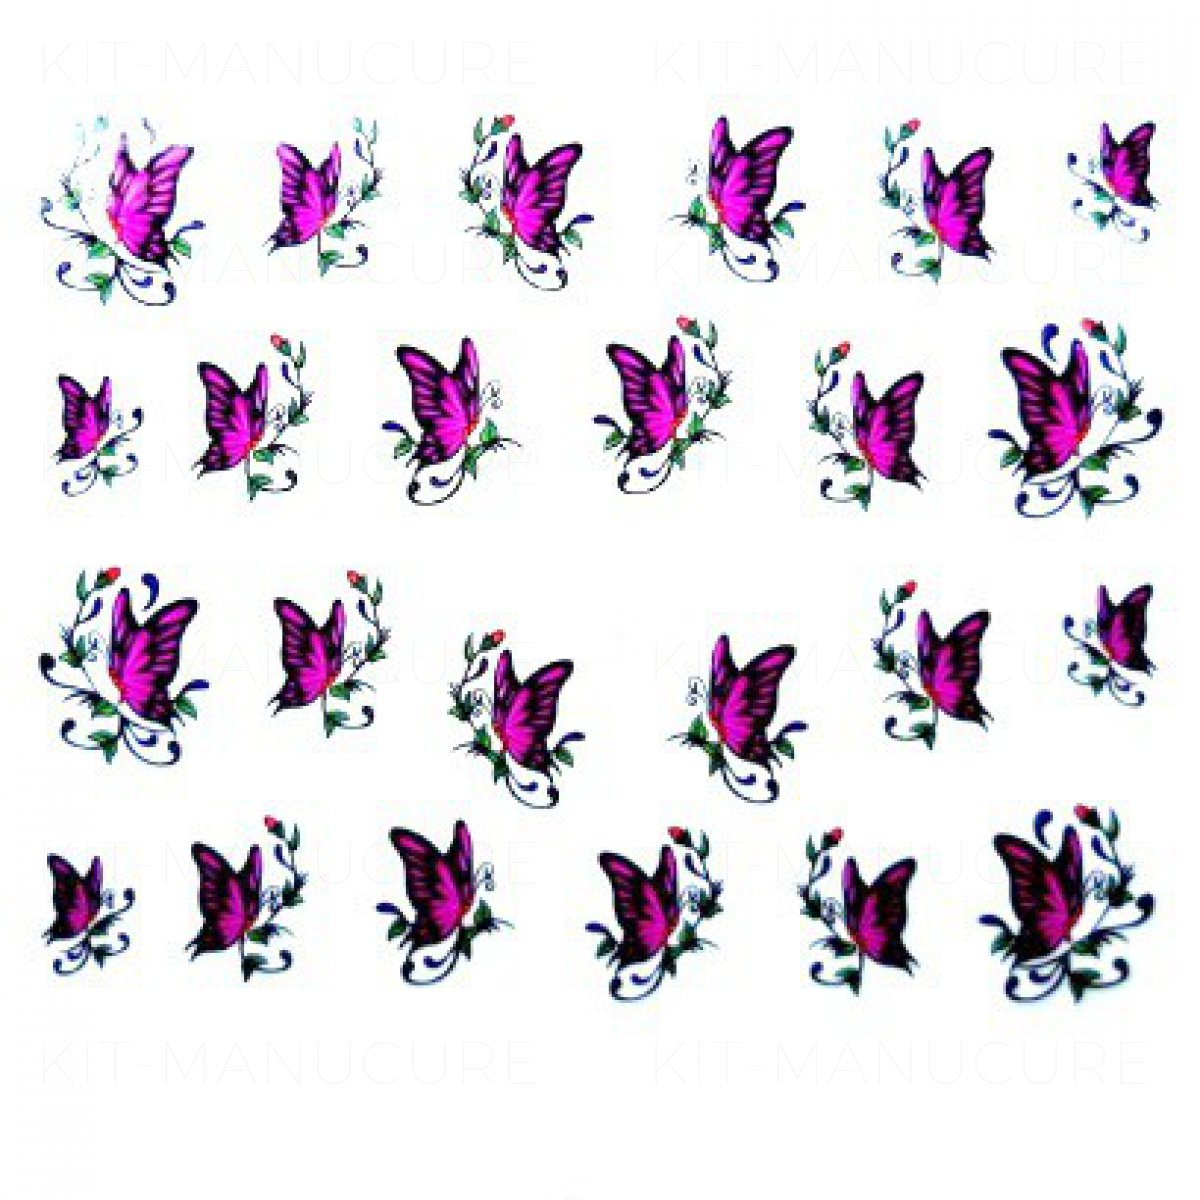 https://www.kit-manucure.com/1368-thickbox_default/water-decals-papillons-et-feuillage-violet.jpg